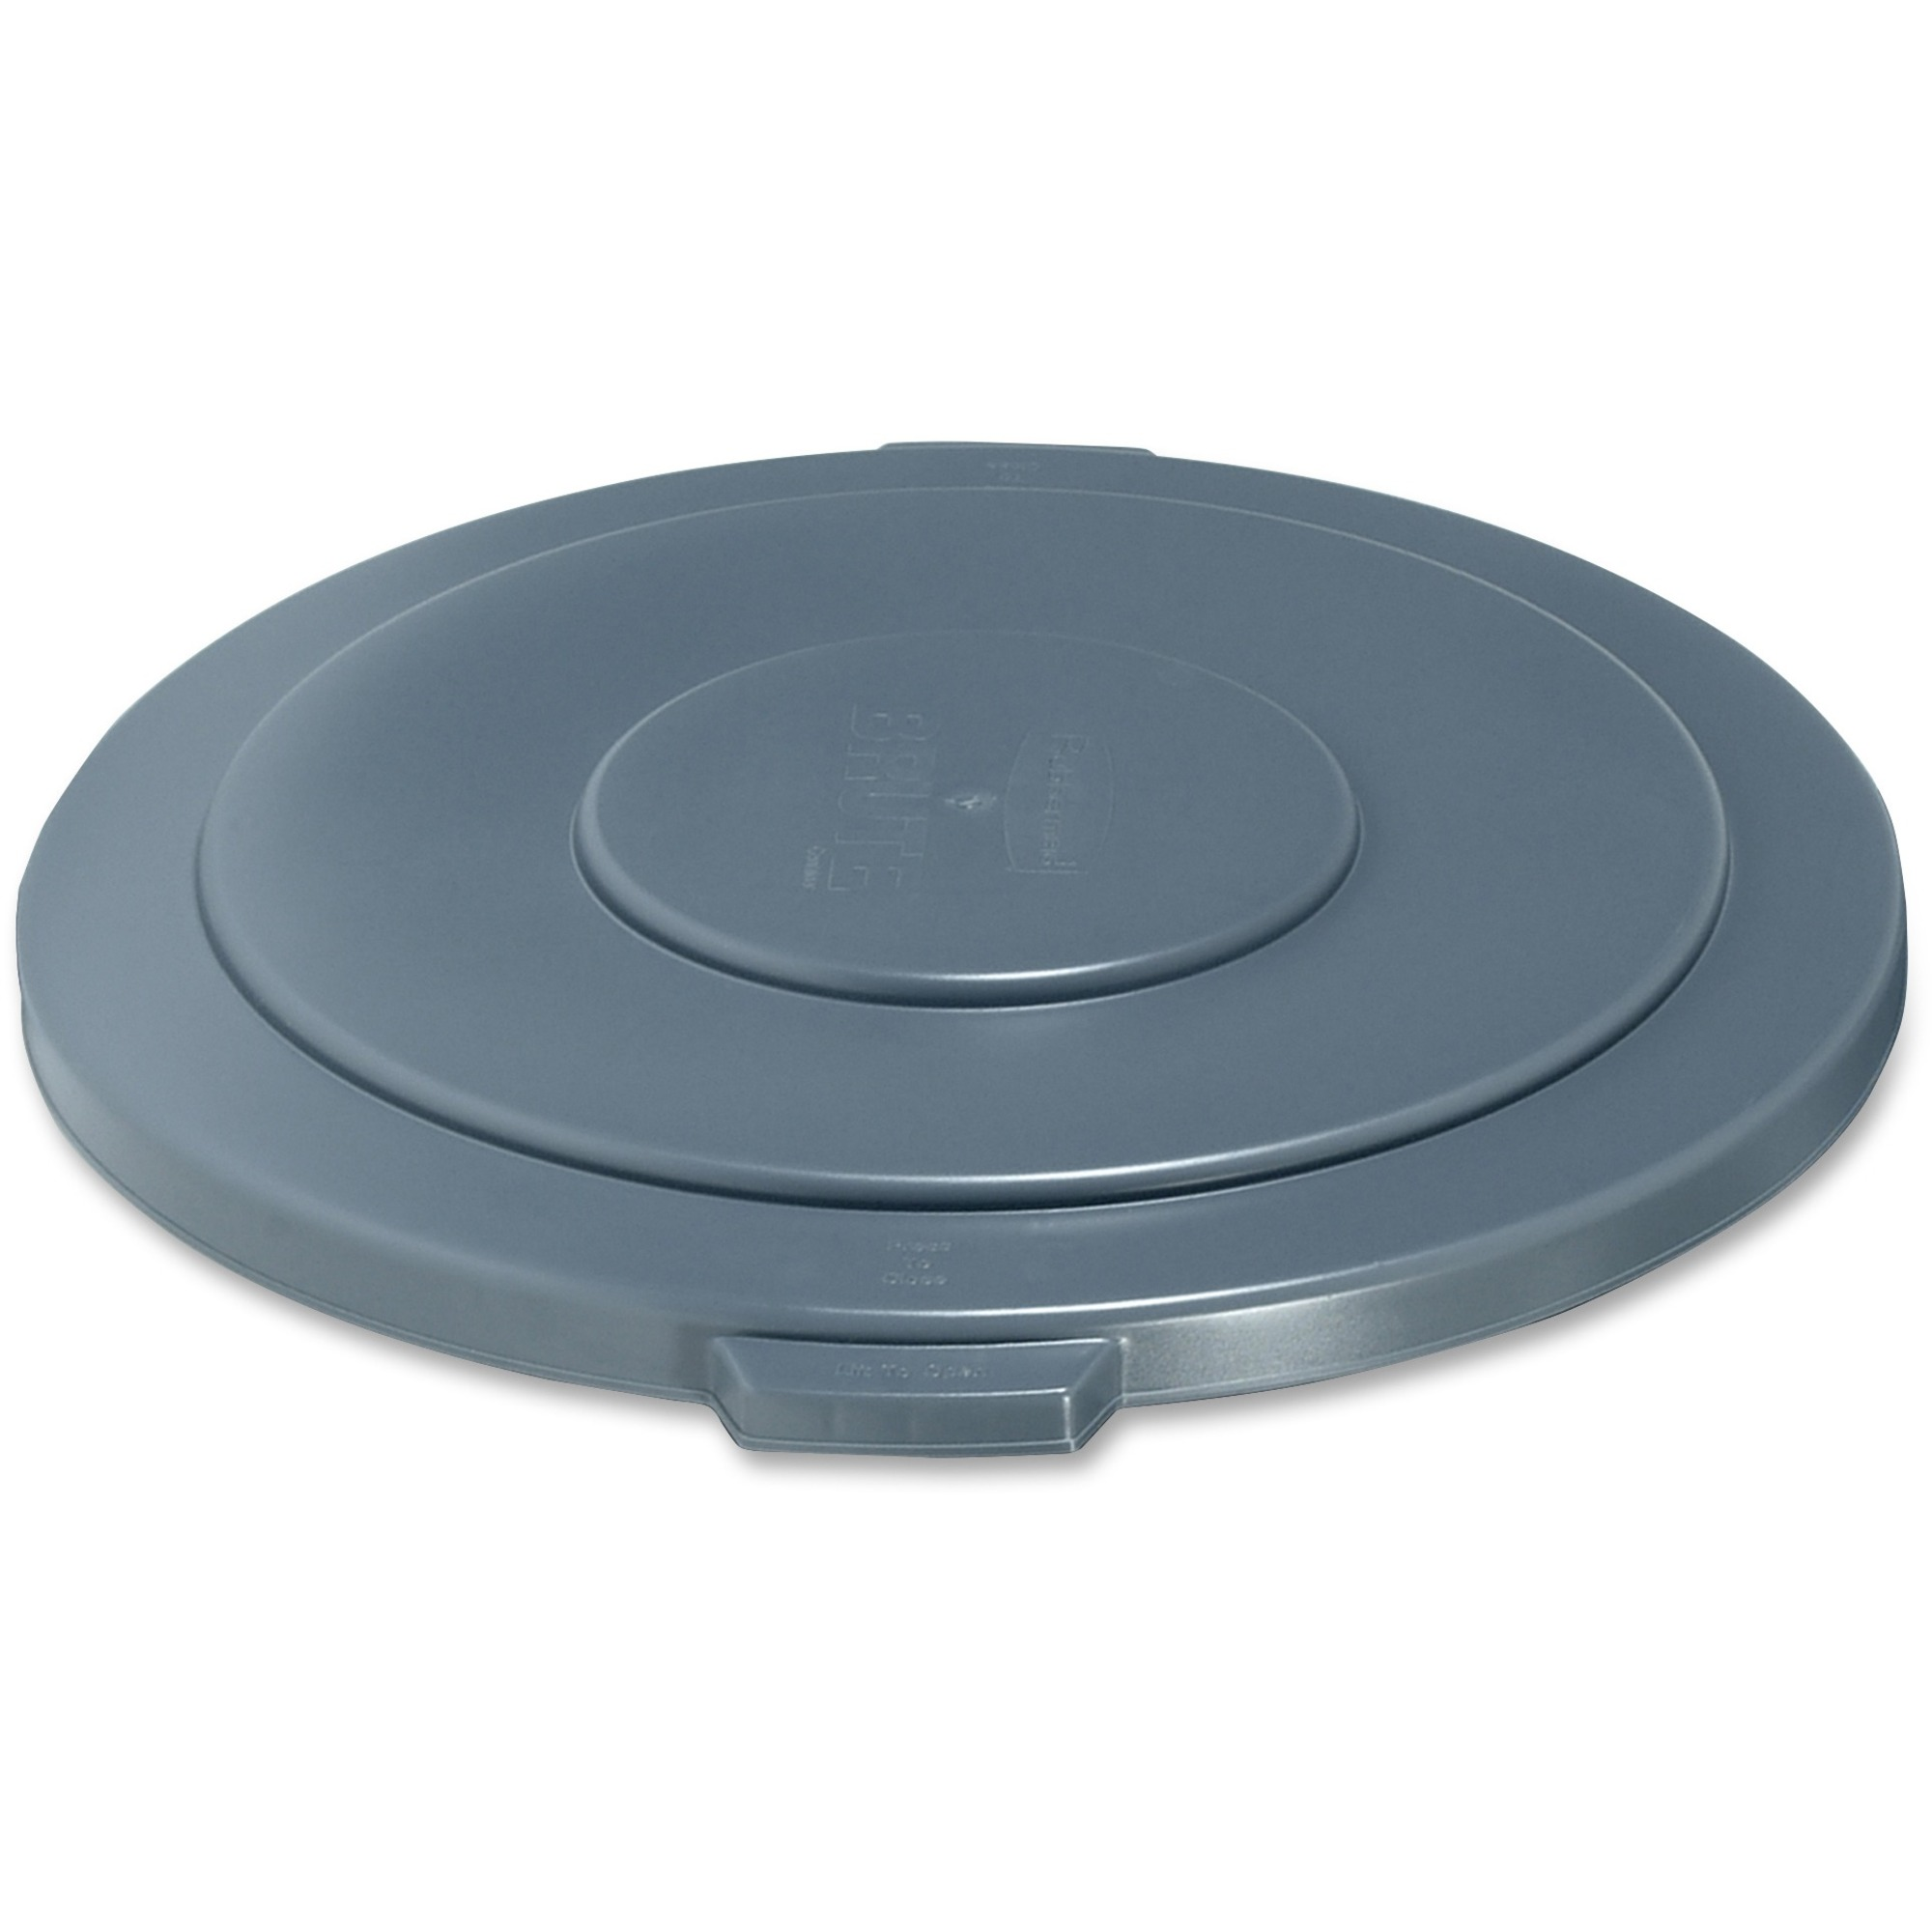 Rubbermaid Commercial Products Rubbermaid Commercial Brute 55-gallon  Container Lid - Round - Plastic, High-density Polyethylene (Hdpe) - 1 Each  - Gray